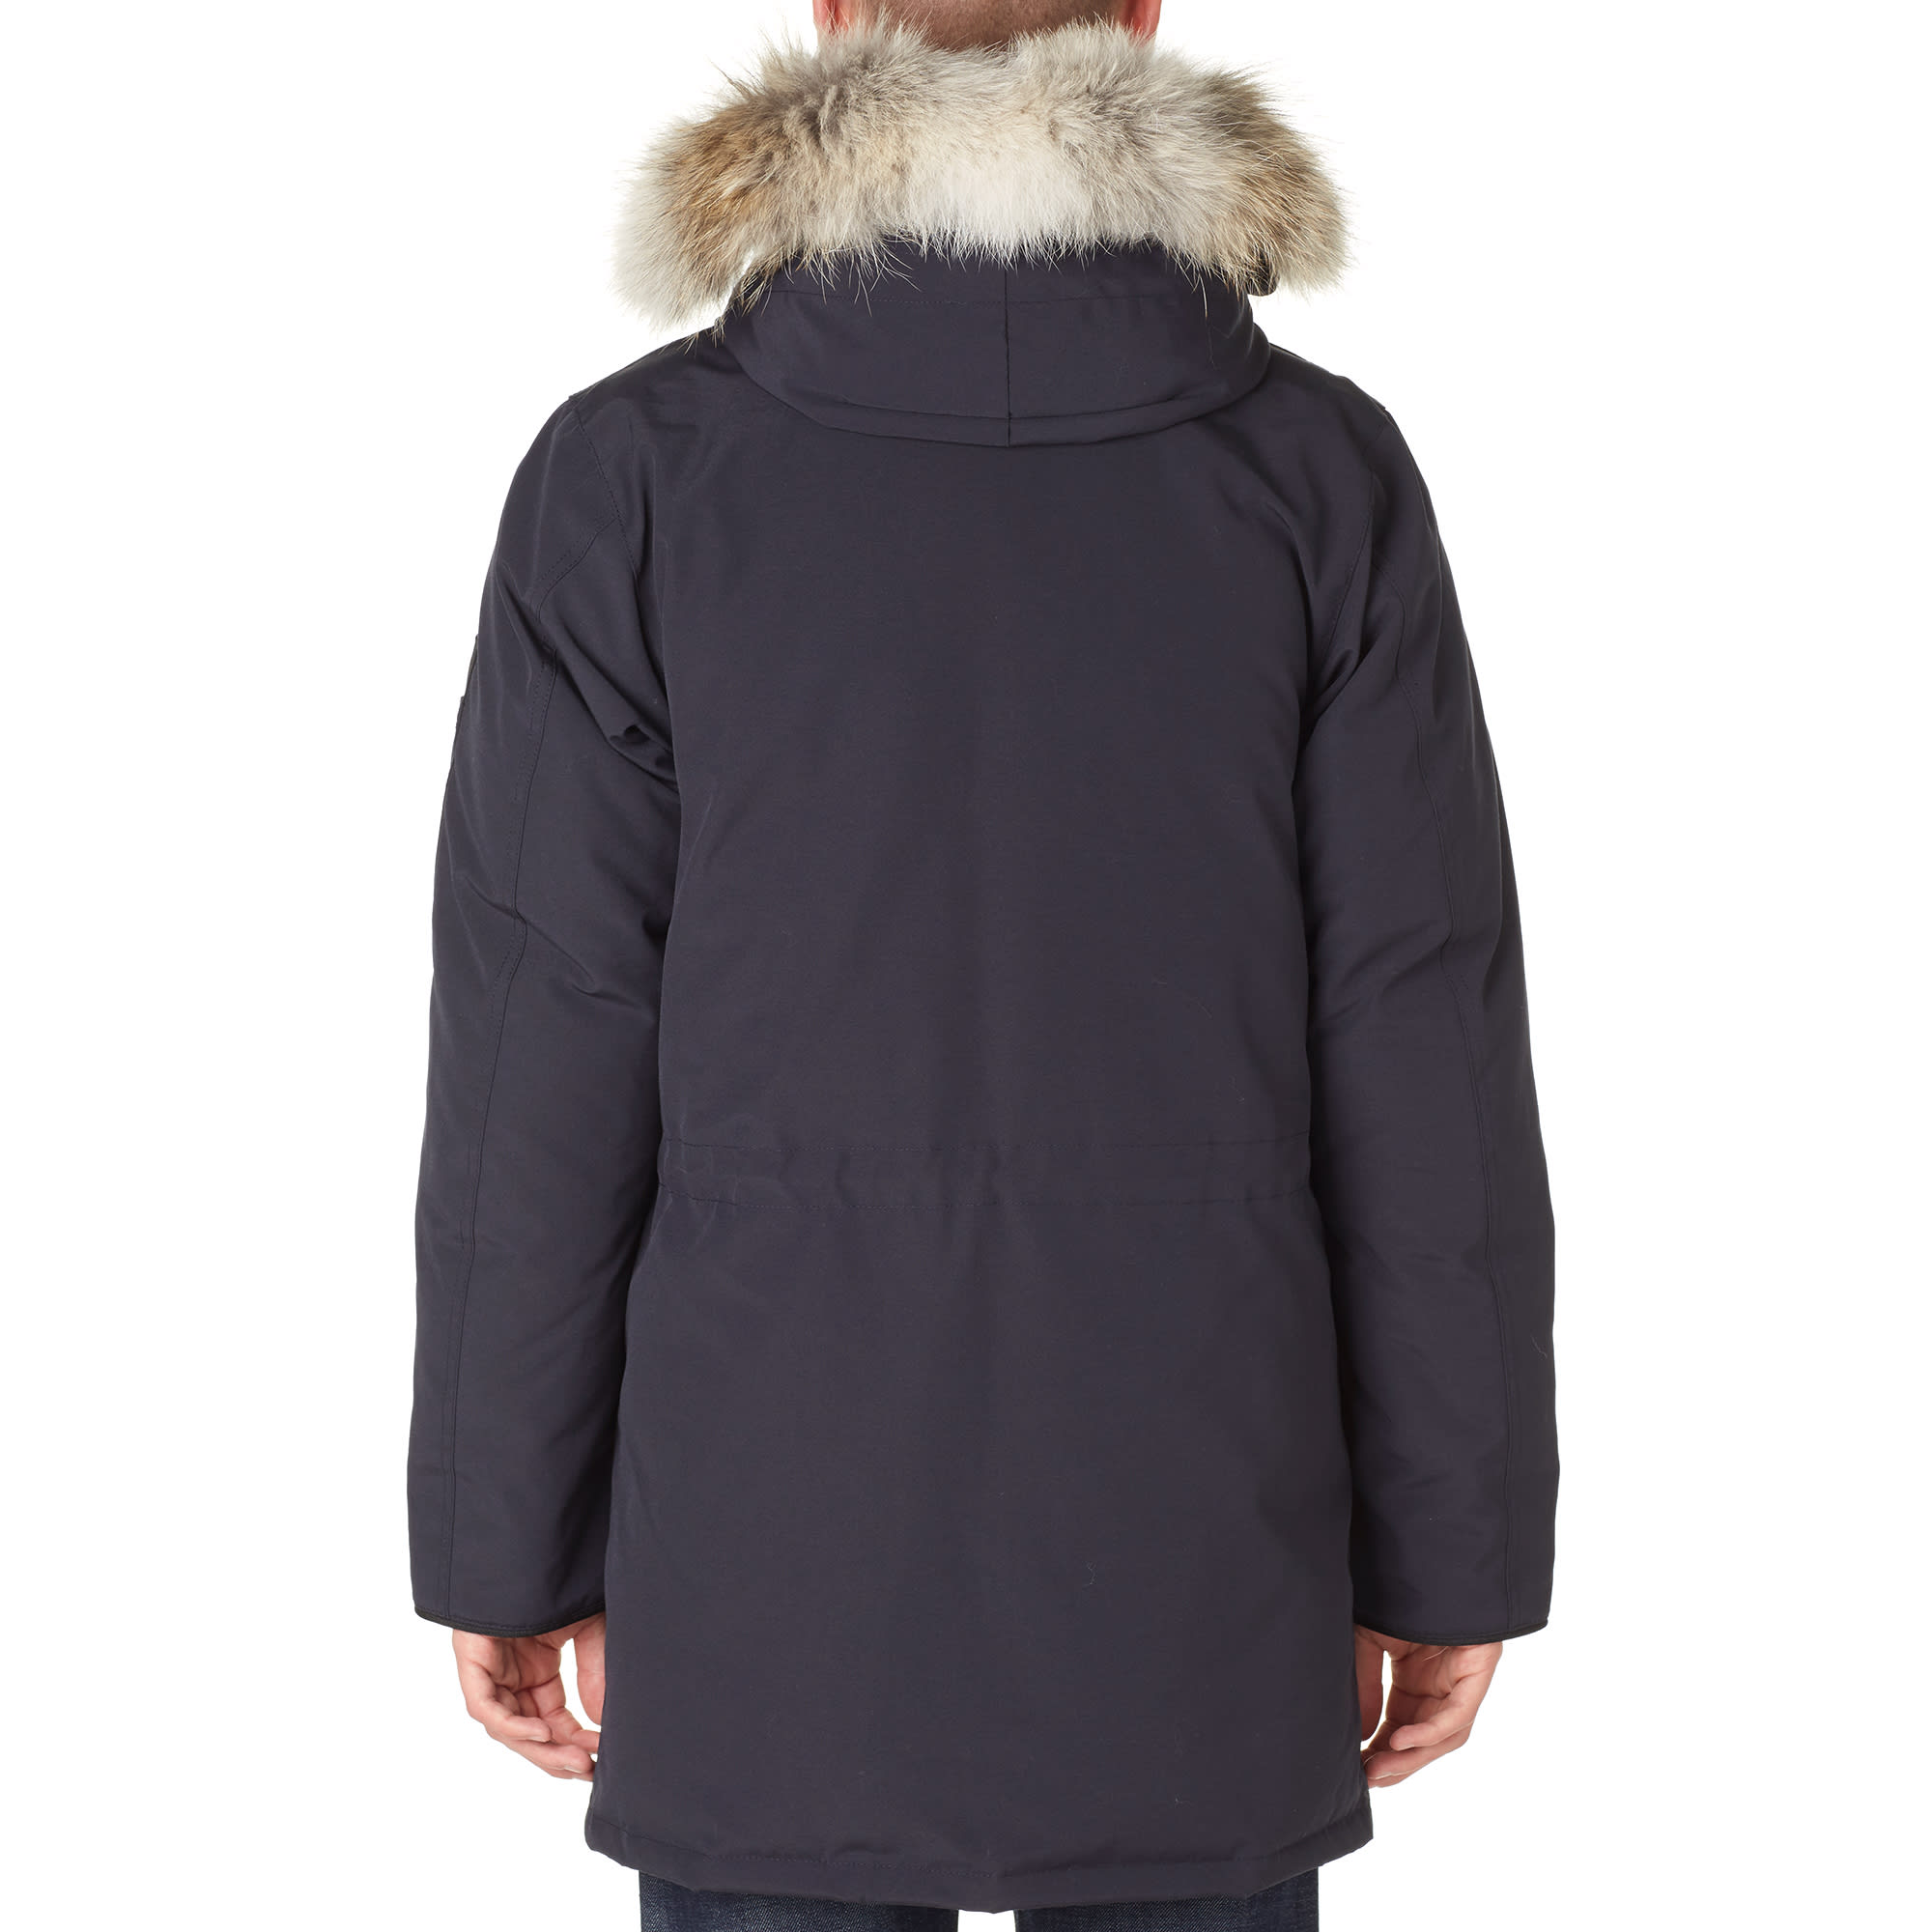 Canada Goose jackets sale fake - Shop For High Quality Canada Goose Freestyle Vest Usa For Men And ...